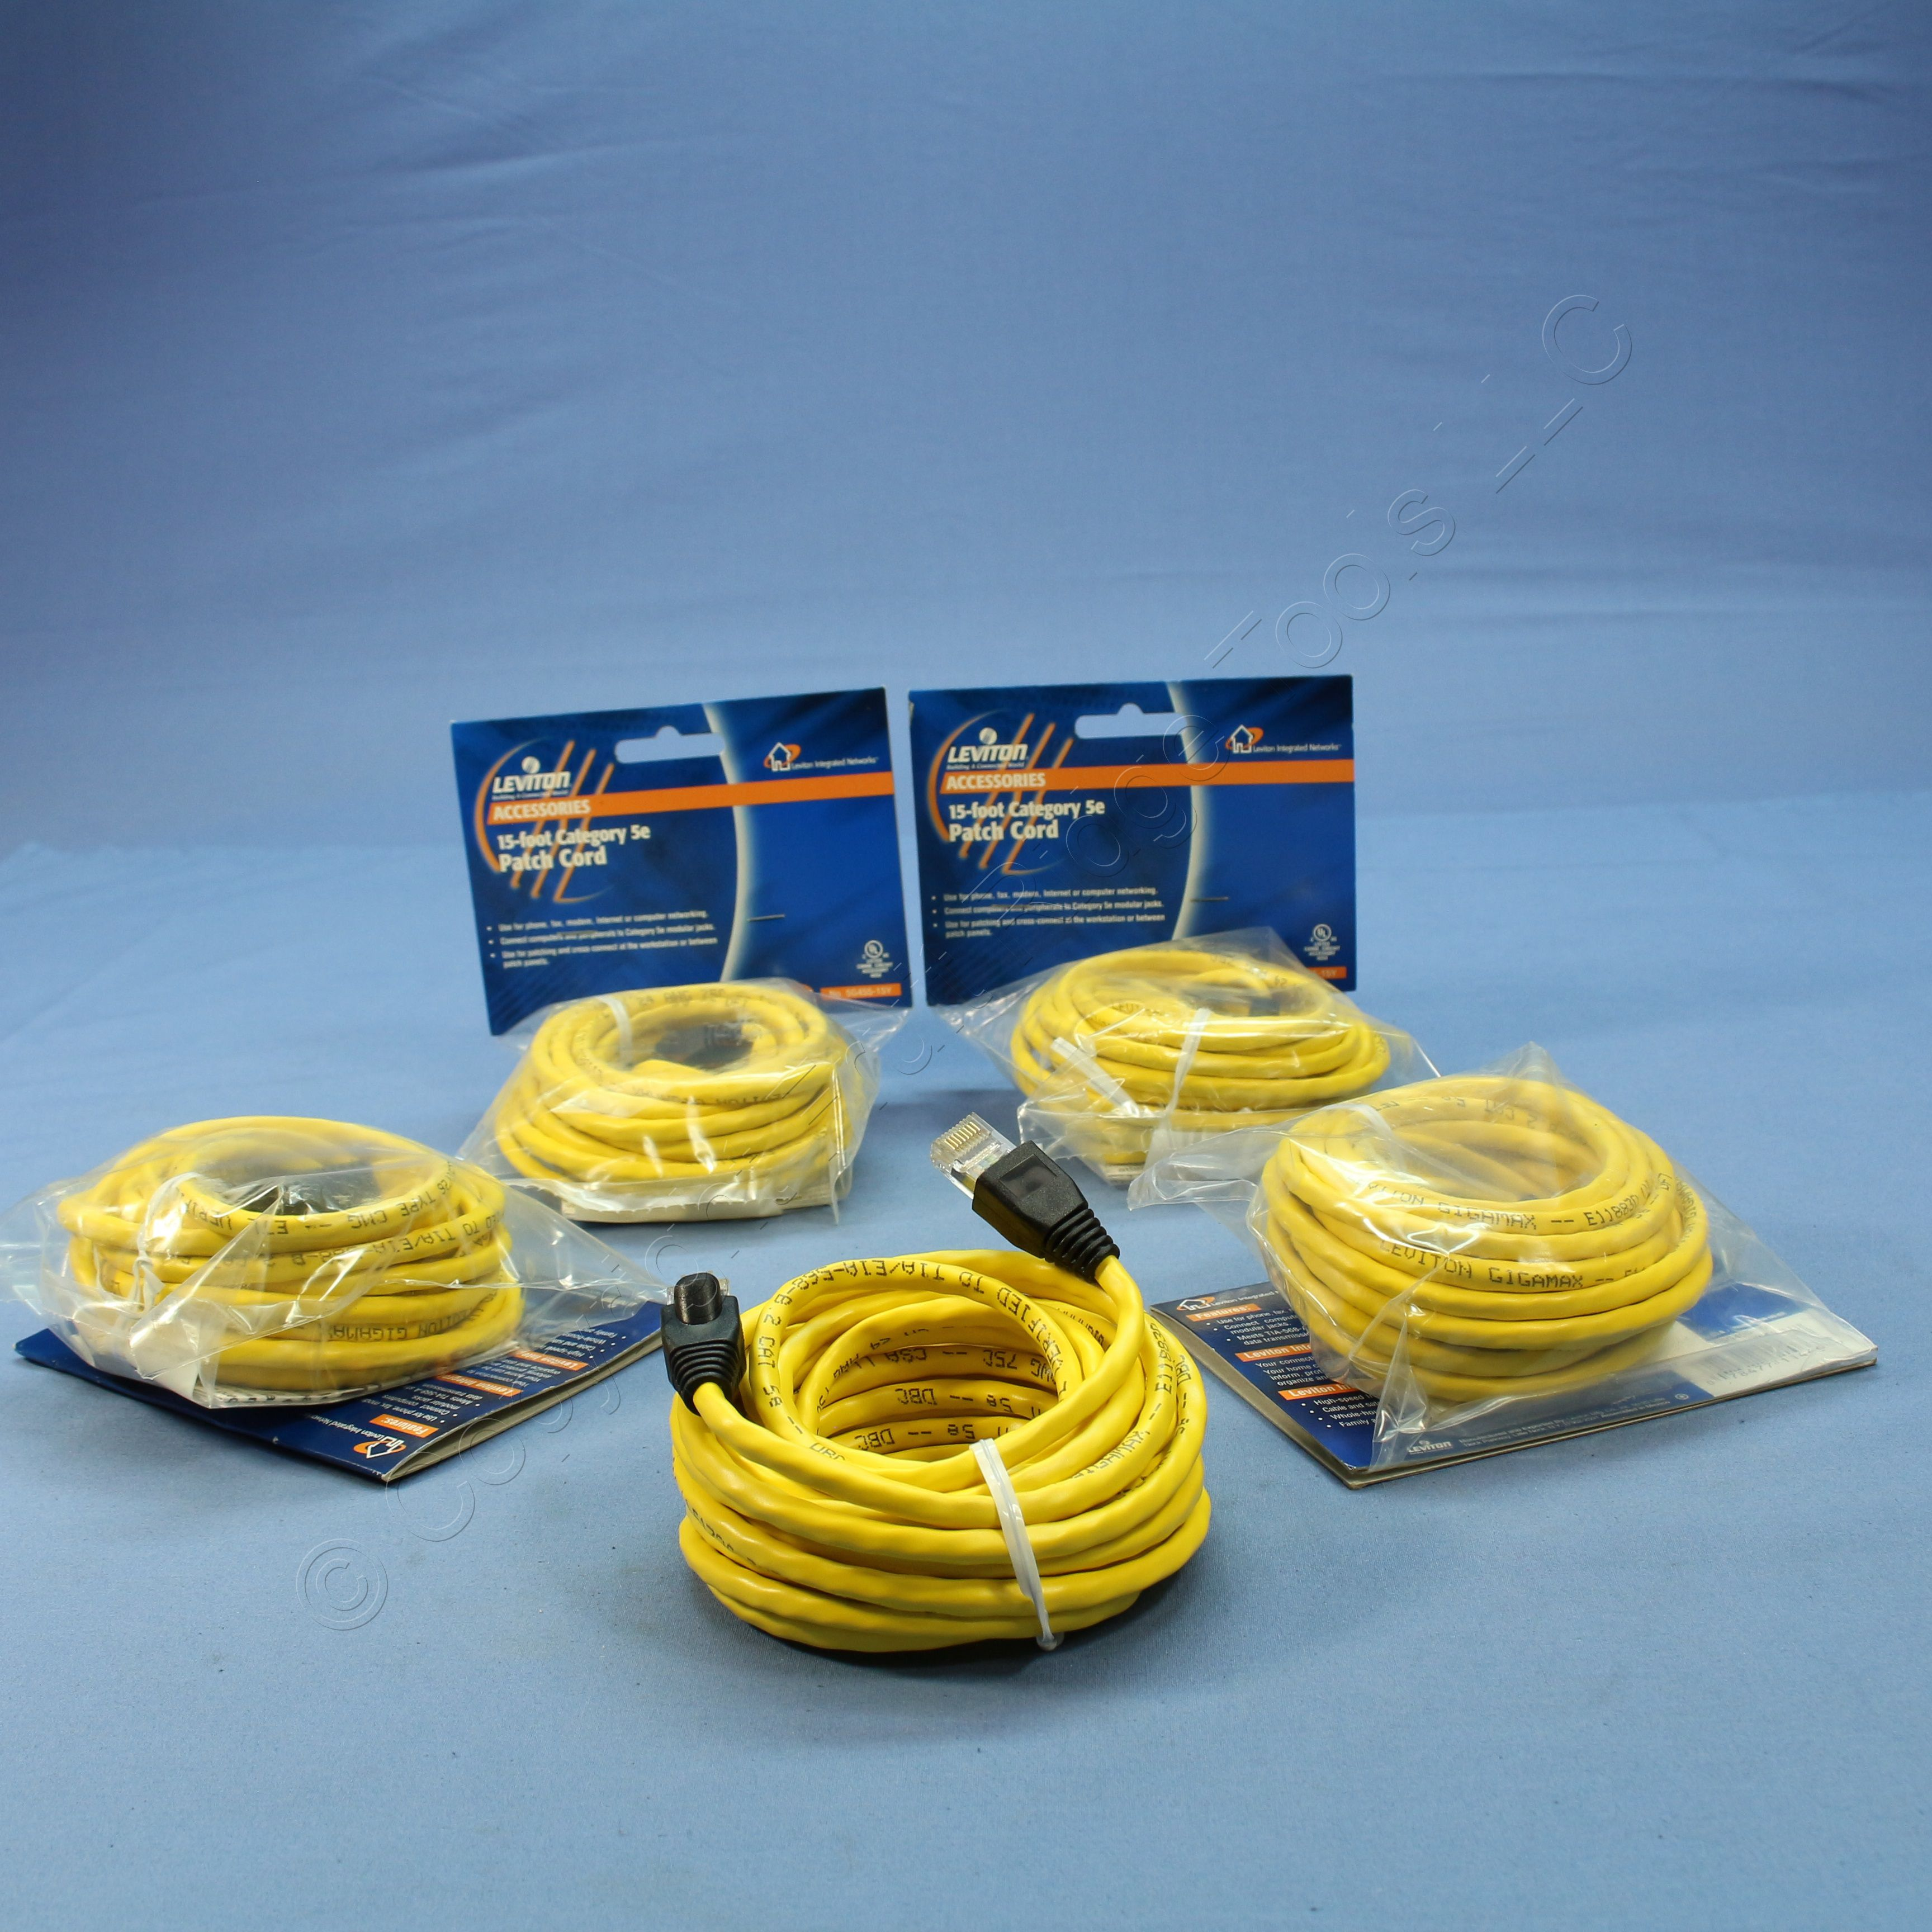 15 FT Feet Cat 5 CAT5e Cat5 ETHERNET LAN Network CABLE--YELLOW